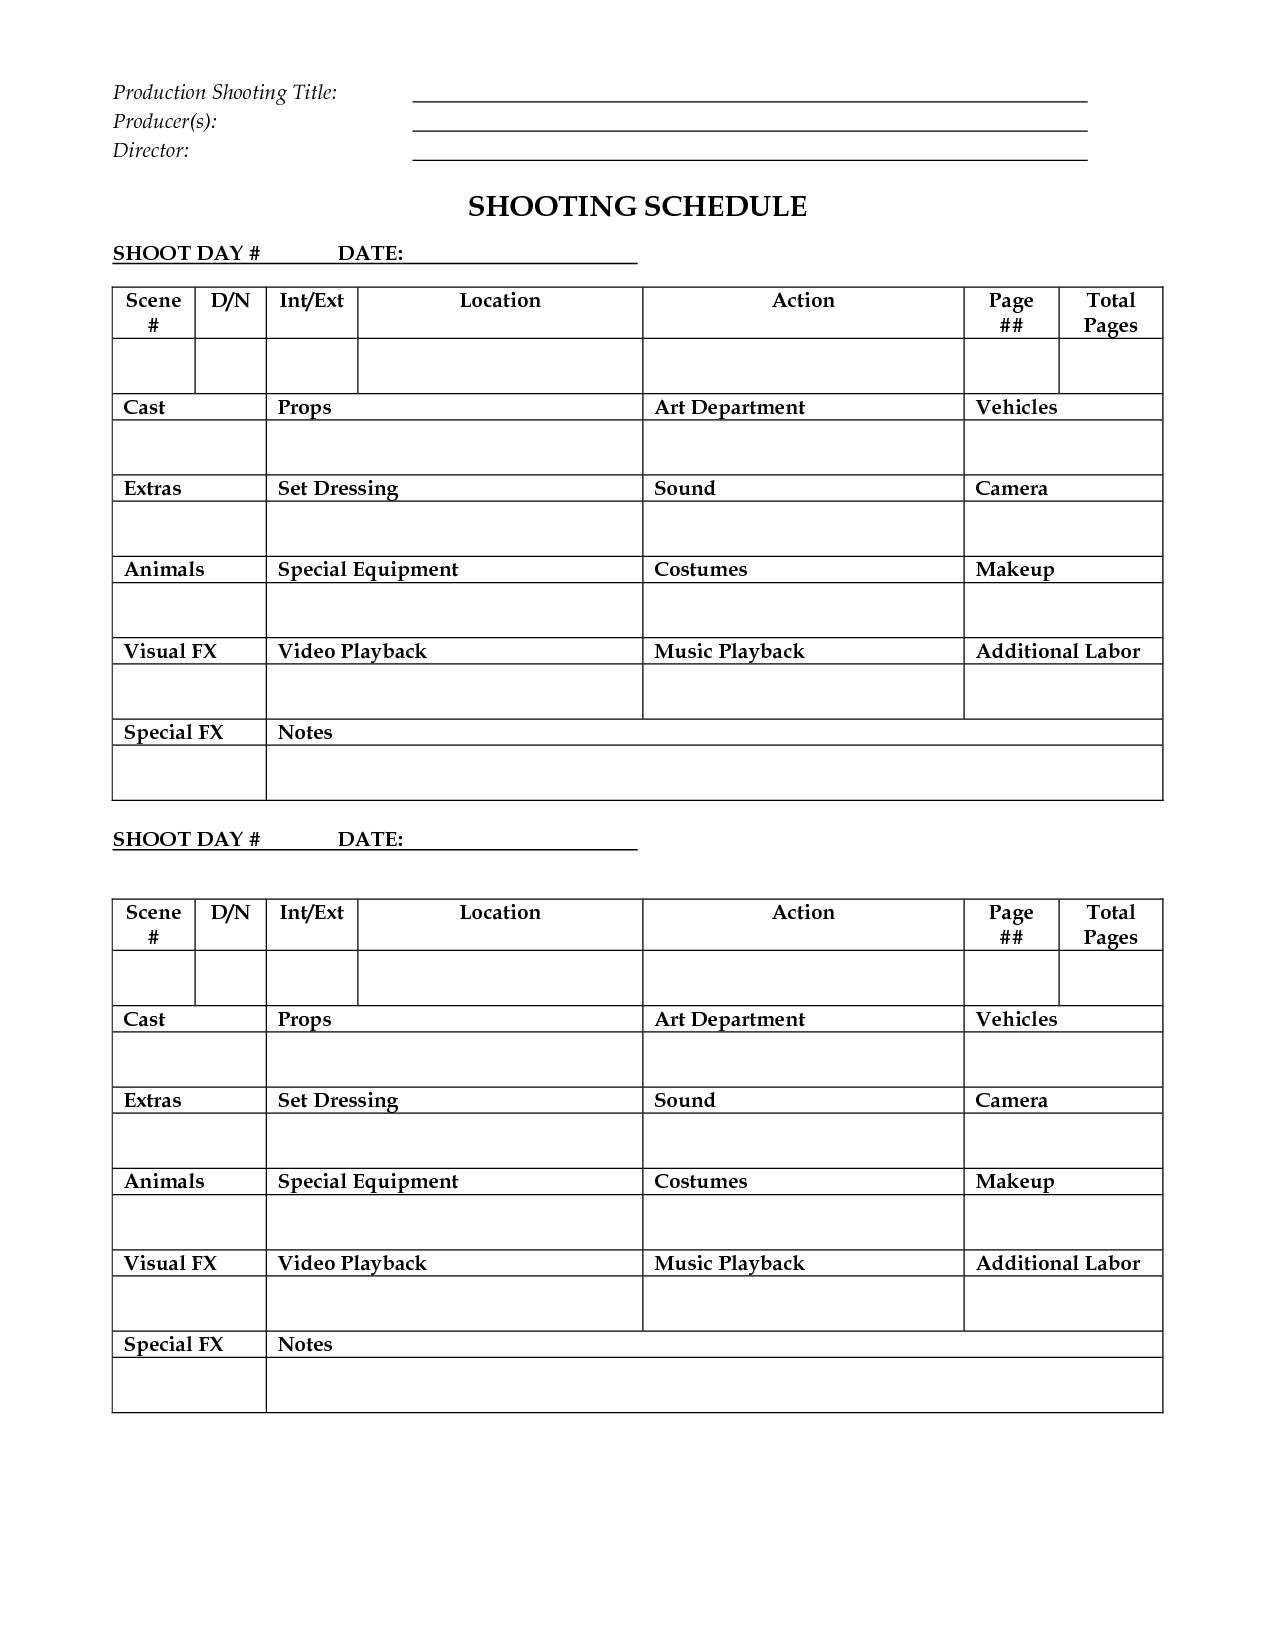 Shooting Schedule Template Hour Filmfest Pinterest - Video production timeline template